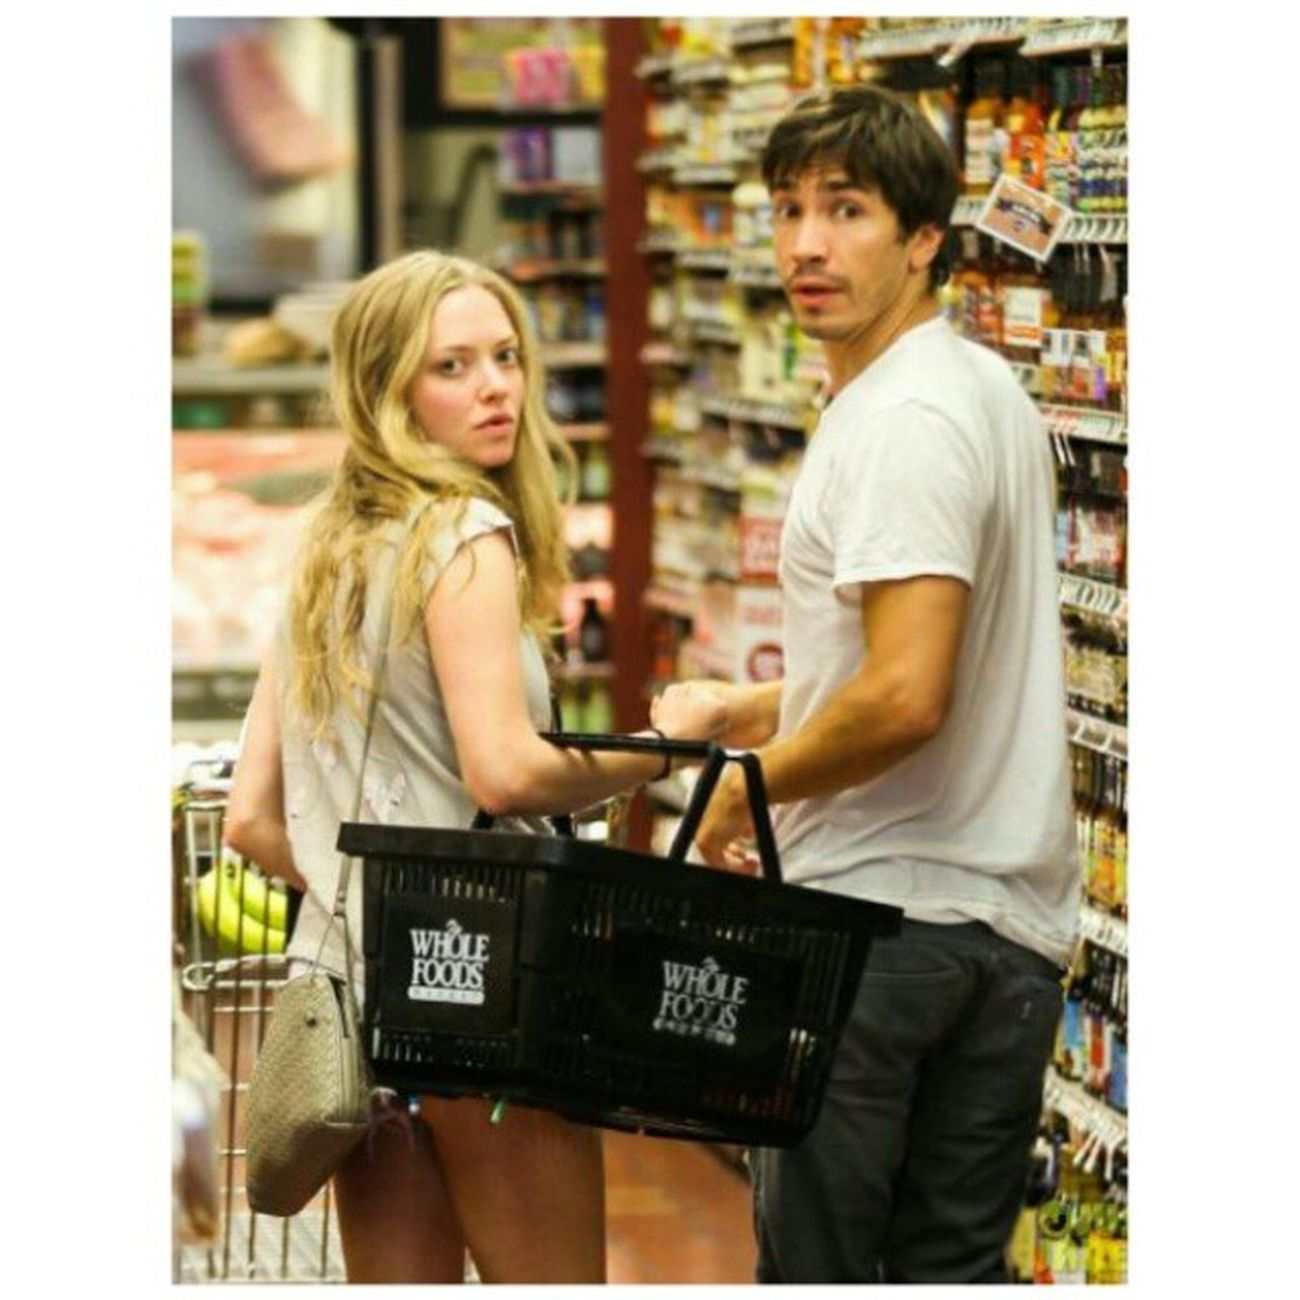 SPOTTED! AmandaSeyfried Justinlong